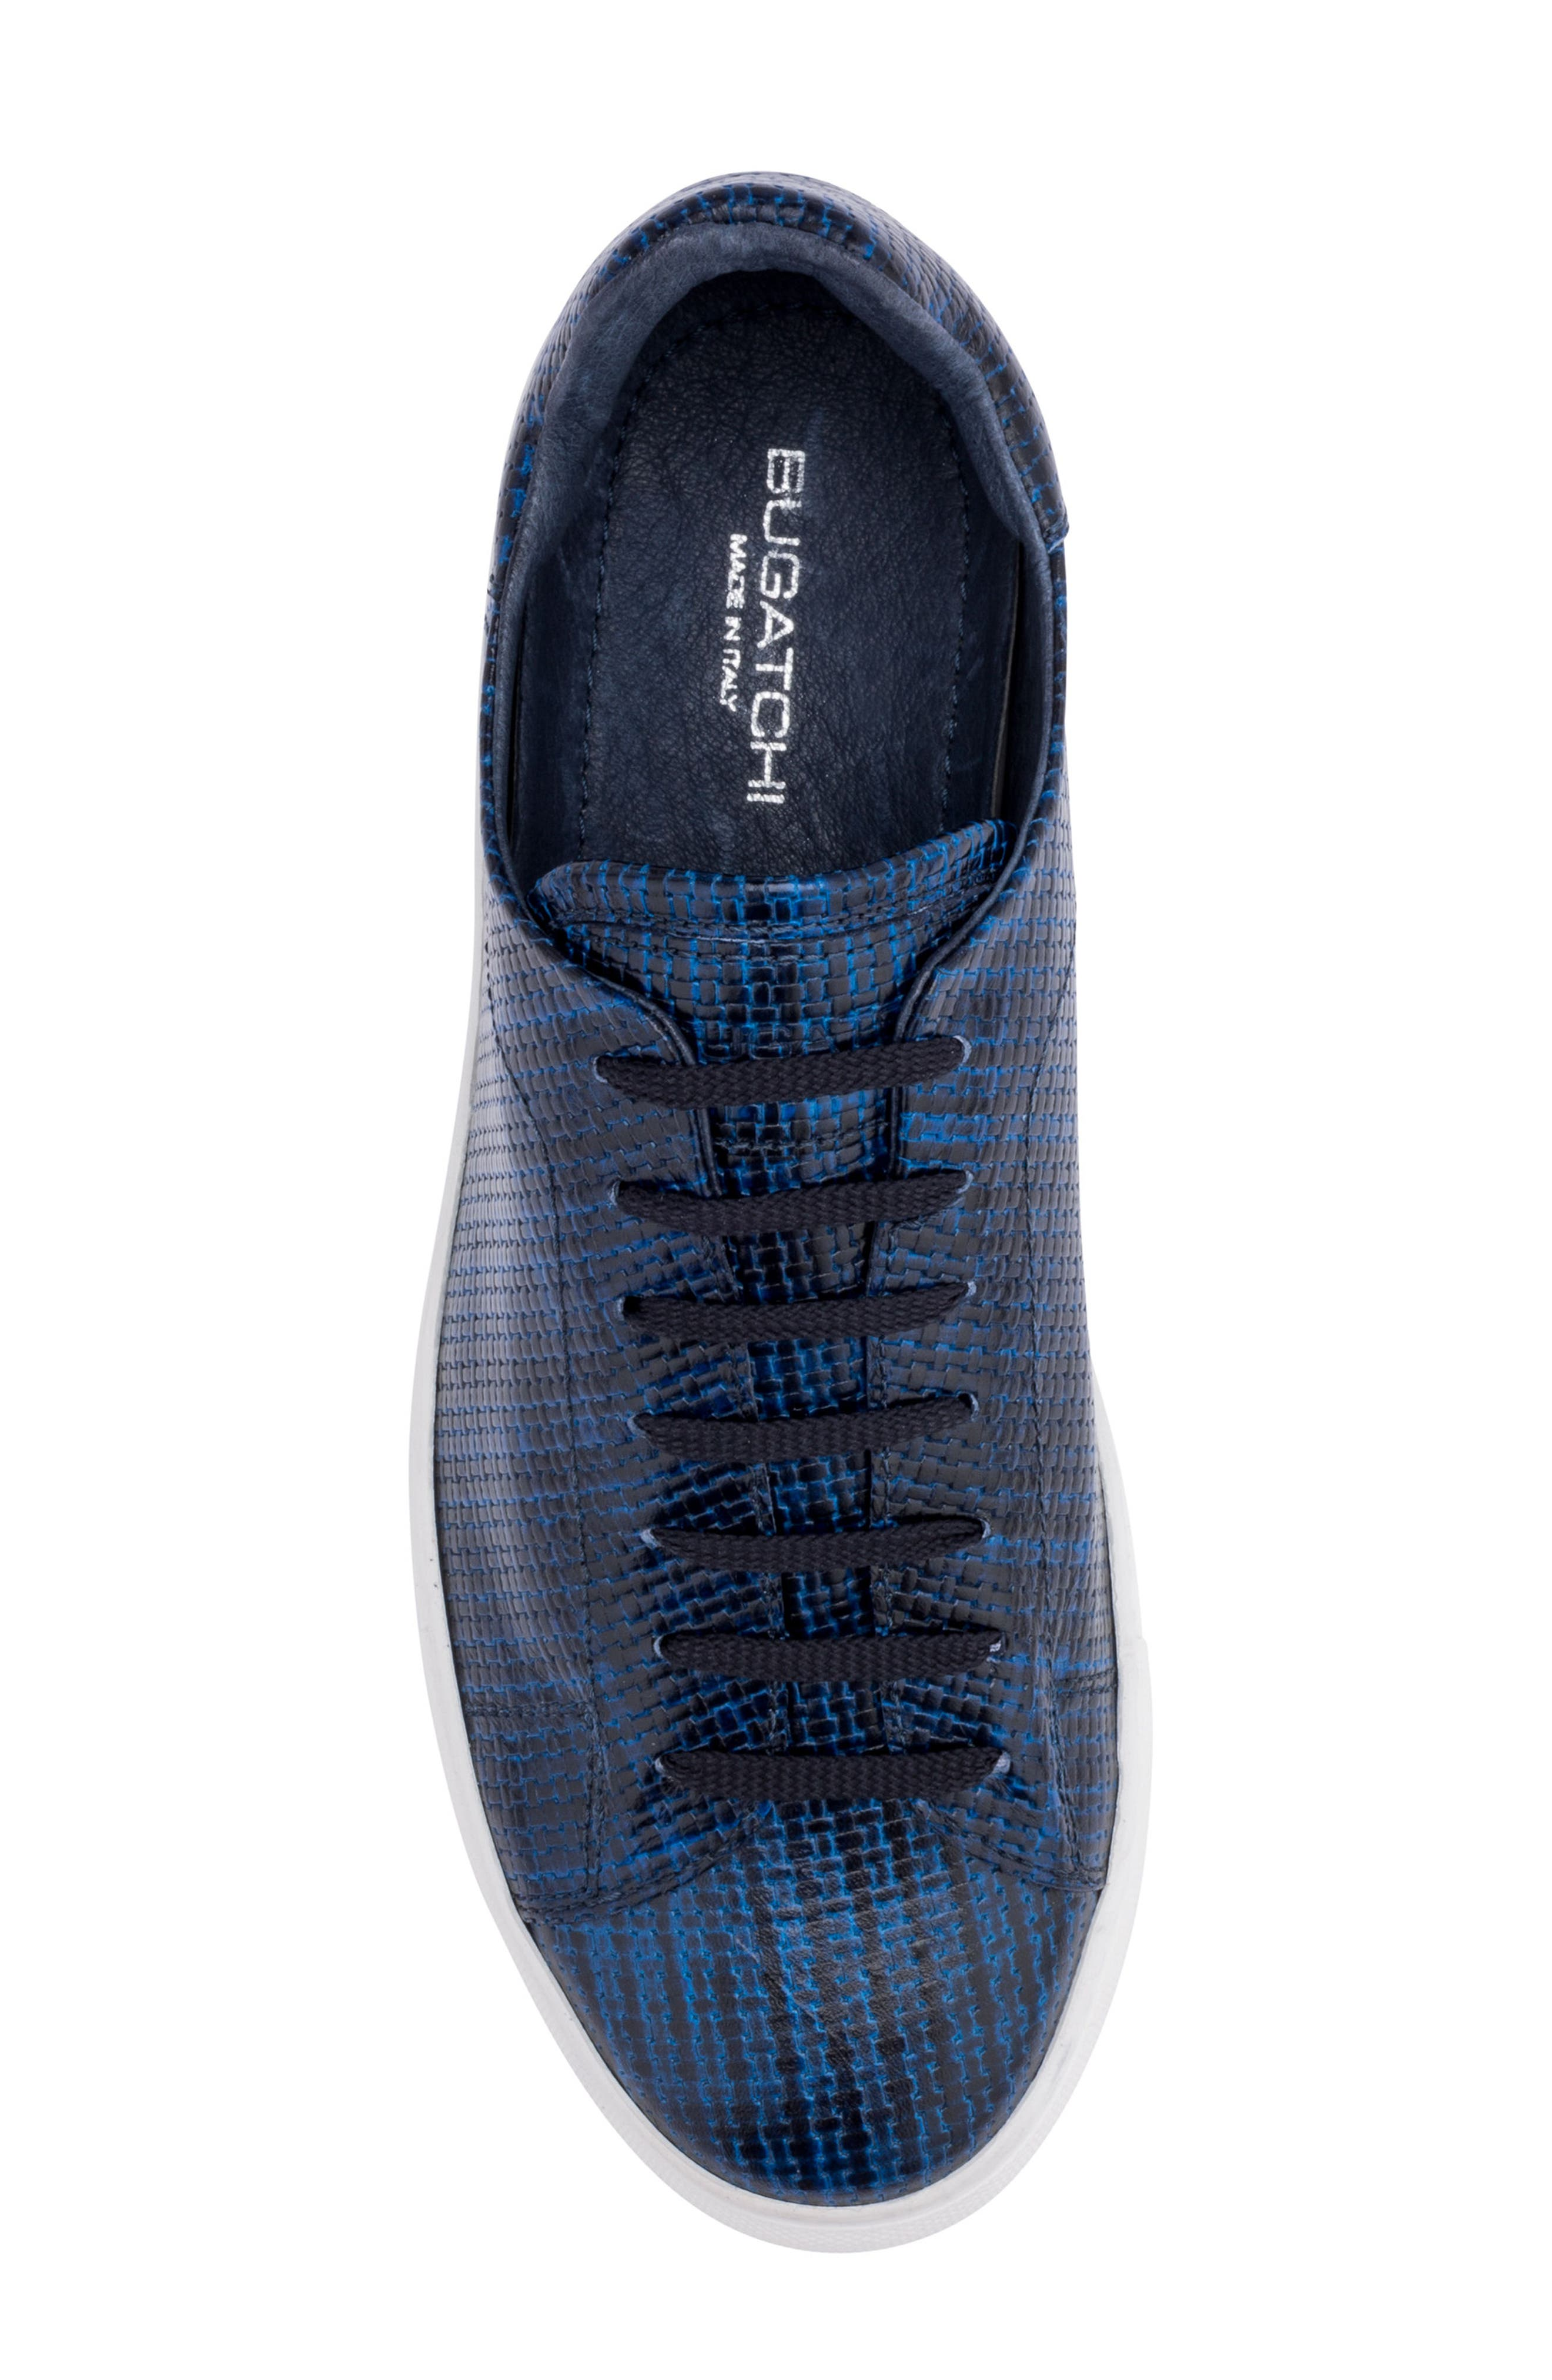 Wimbledon Sneaker,                             Alternate thumbnail 5, color,                             Navy Leather